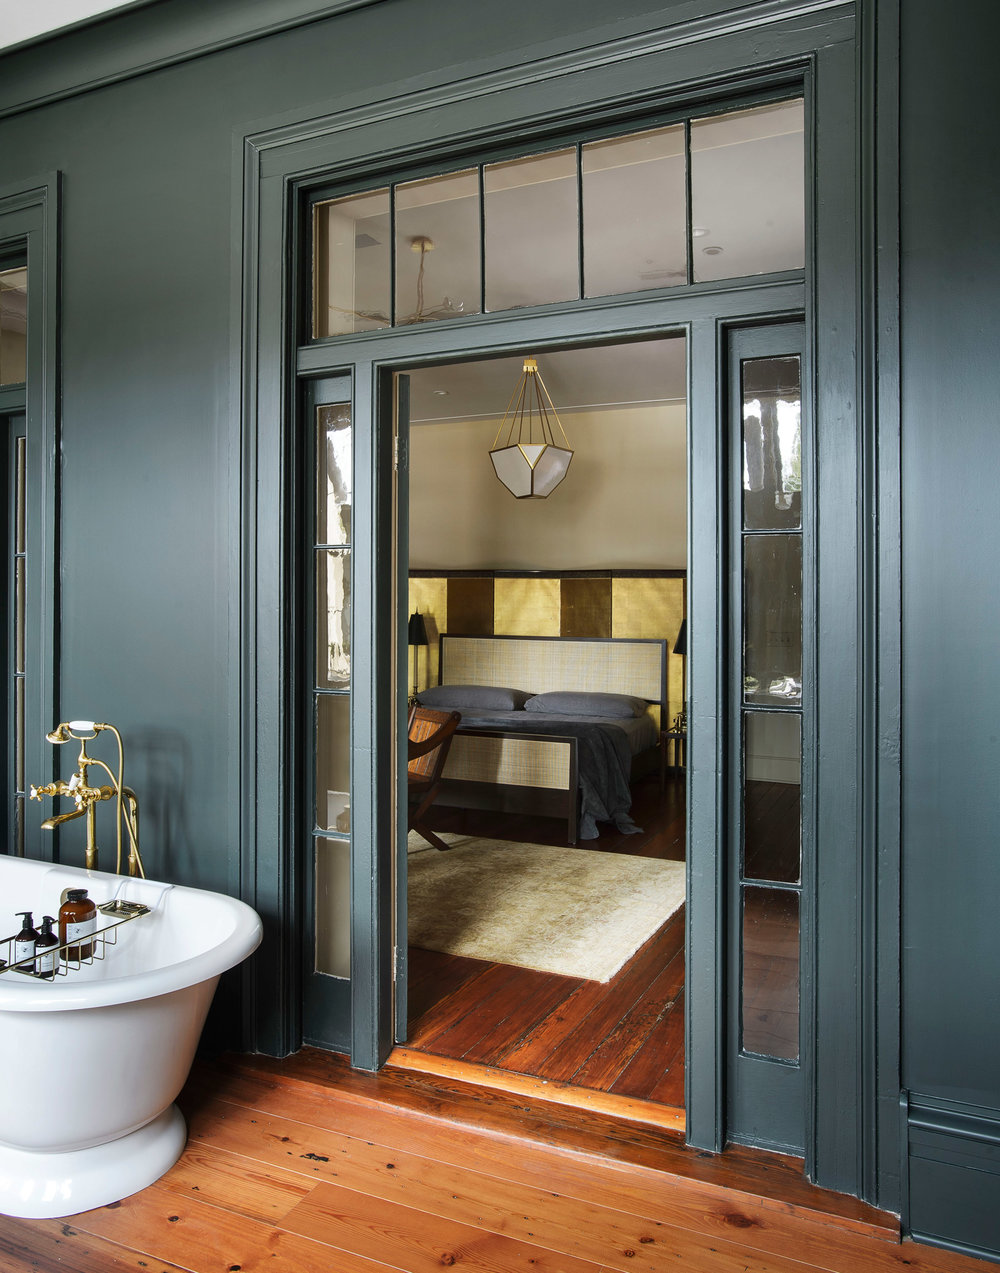 workstead-house-charleston-south-carolina-renovation-workstead_dezeen_2364_col_34.jpg